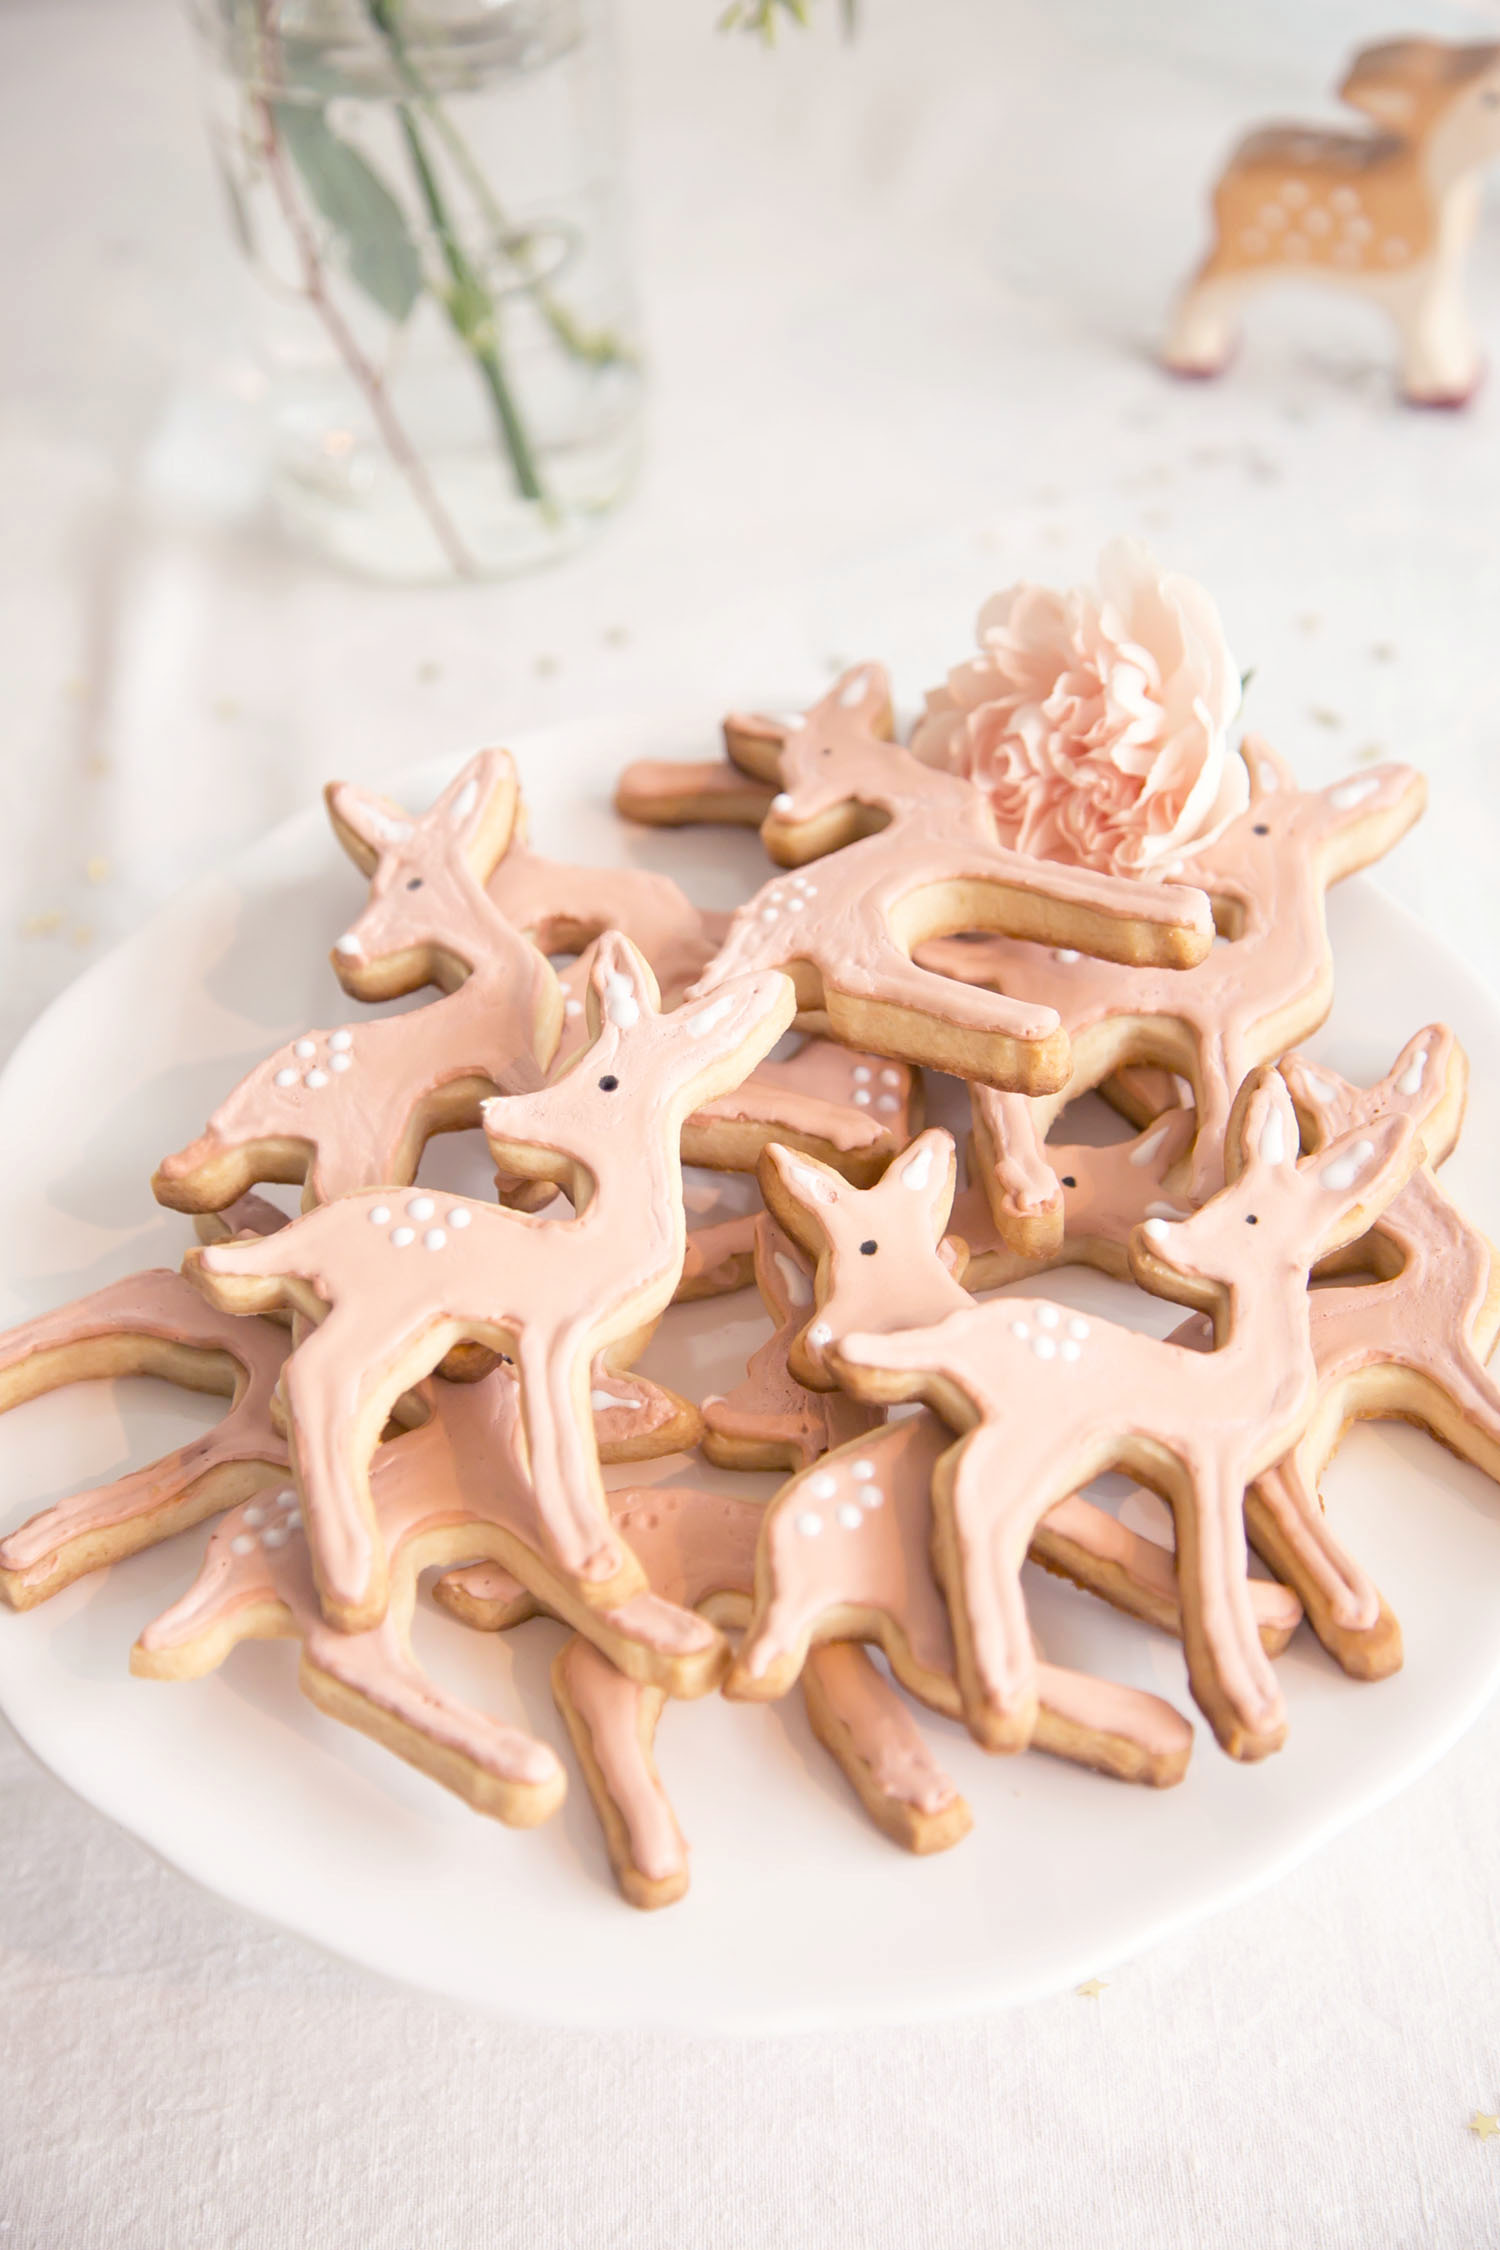 DIY deer cookies